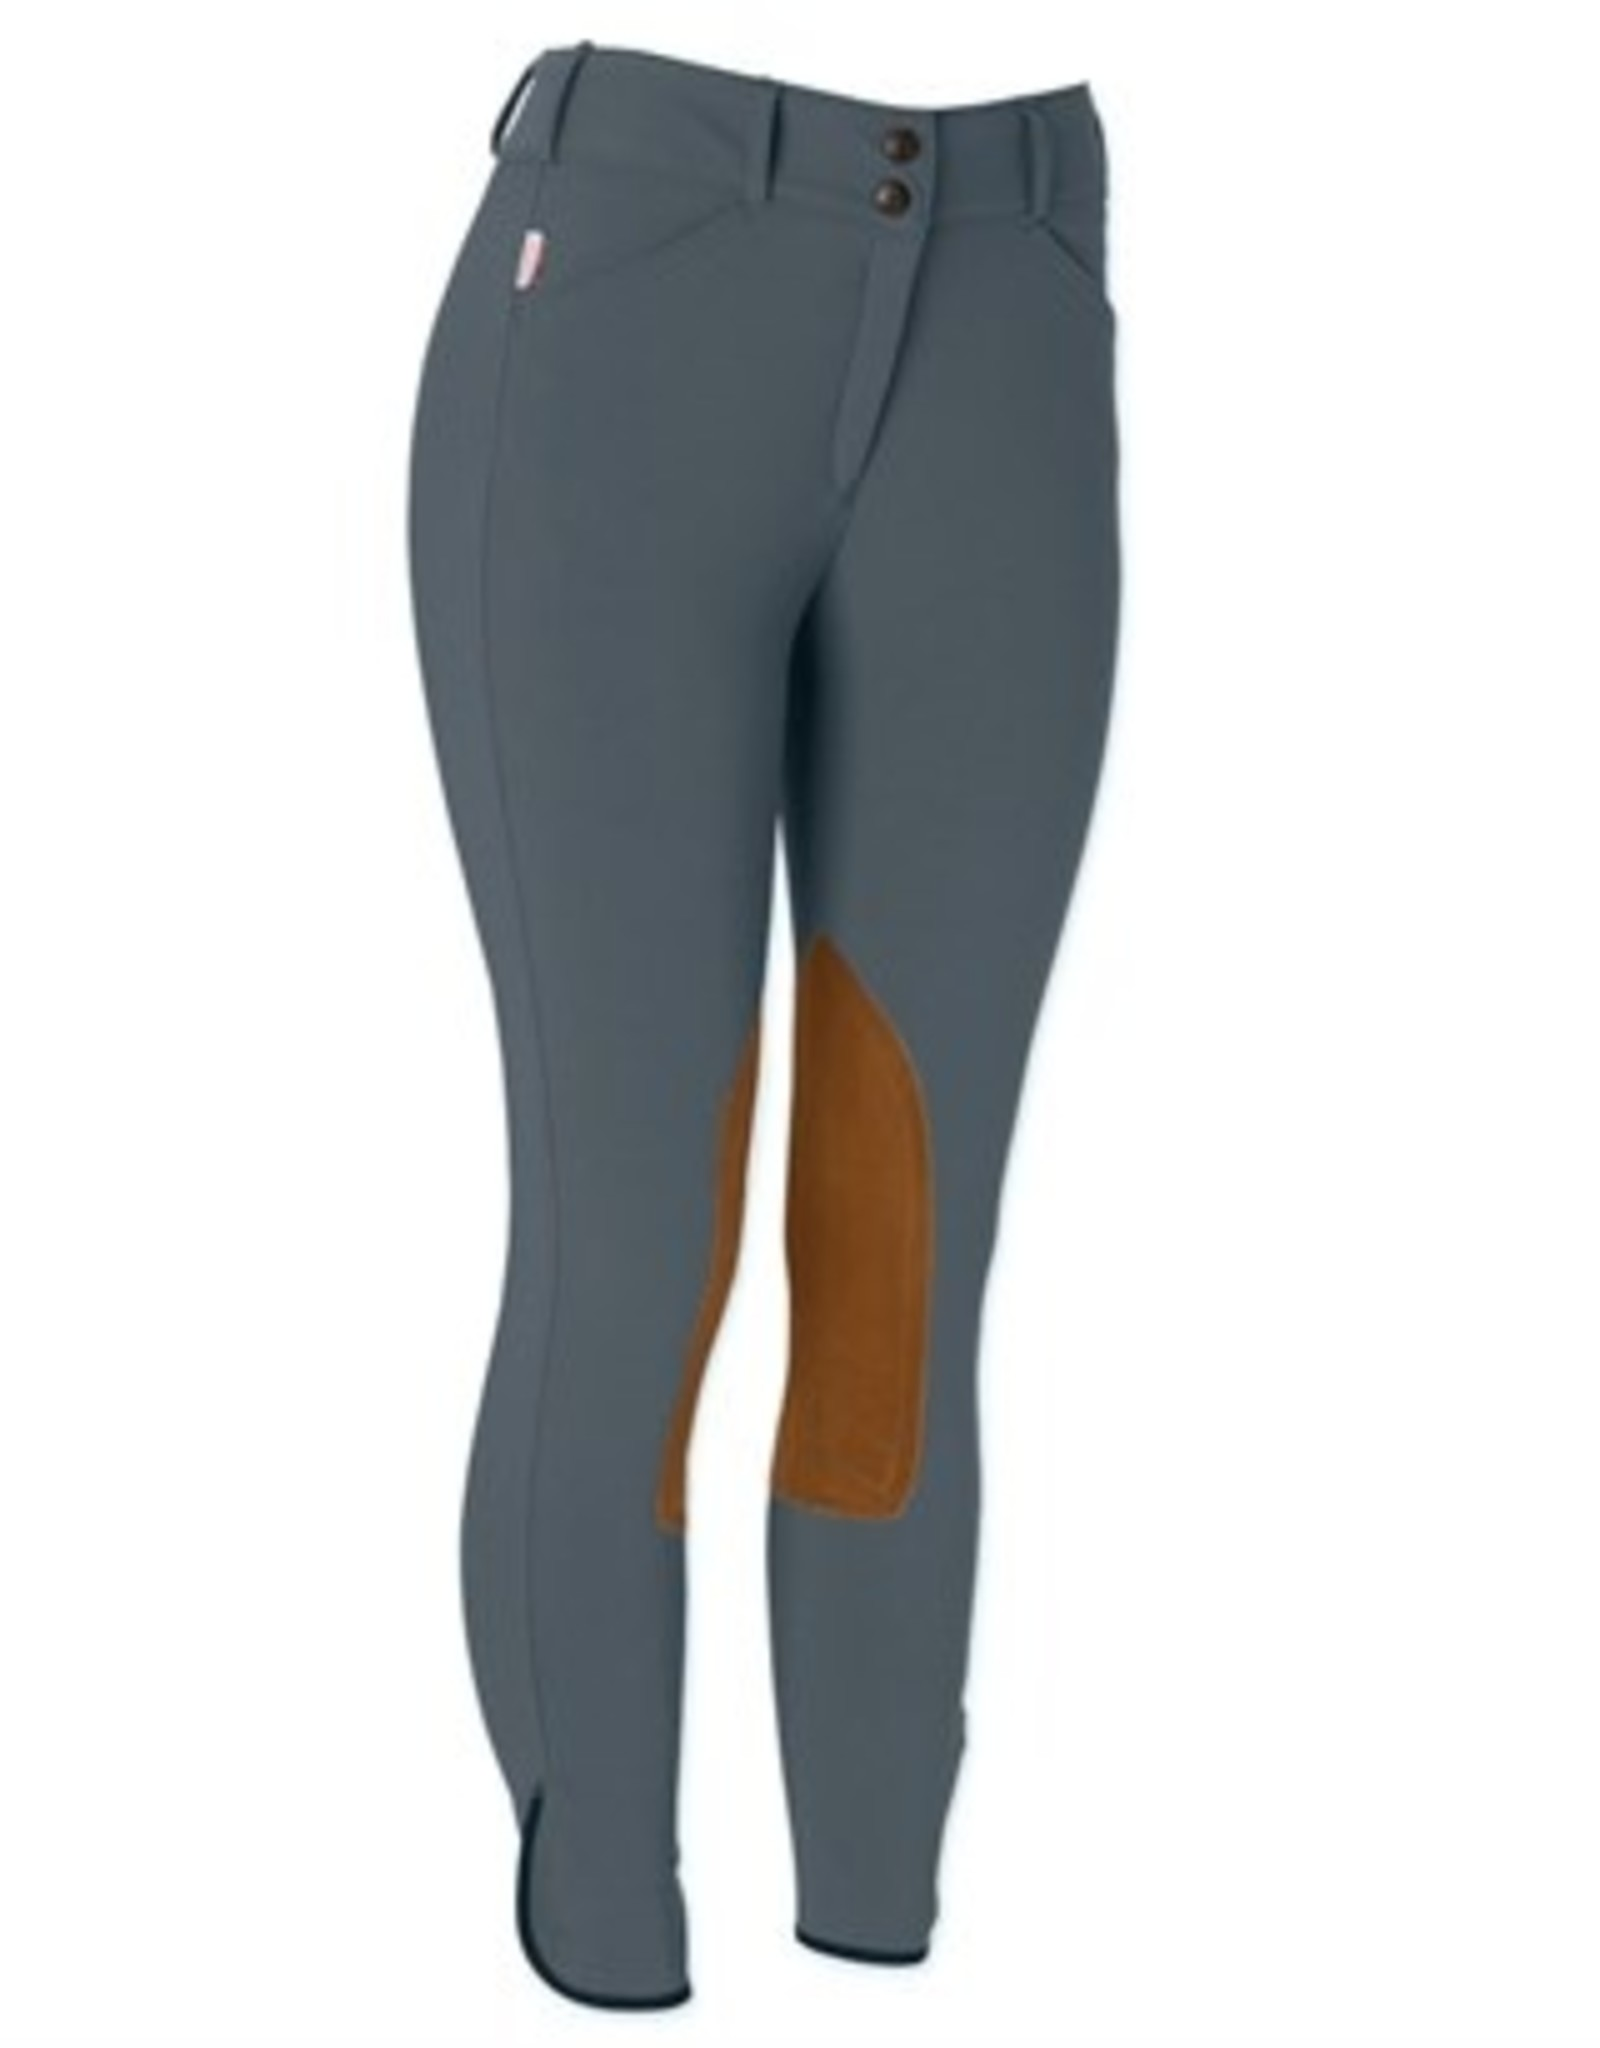 Tailored Sportsman Ladies' Low Rise Vintage Trophy Hunter Breeches